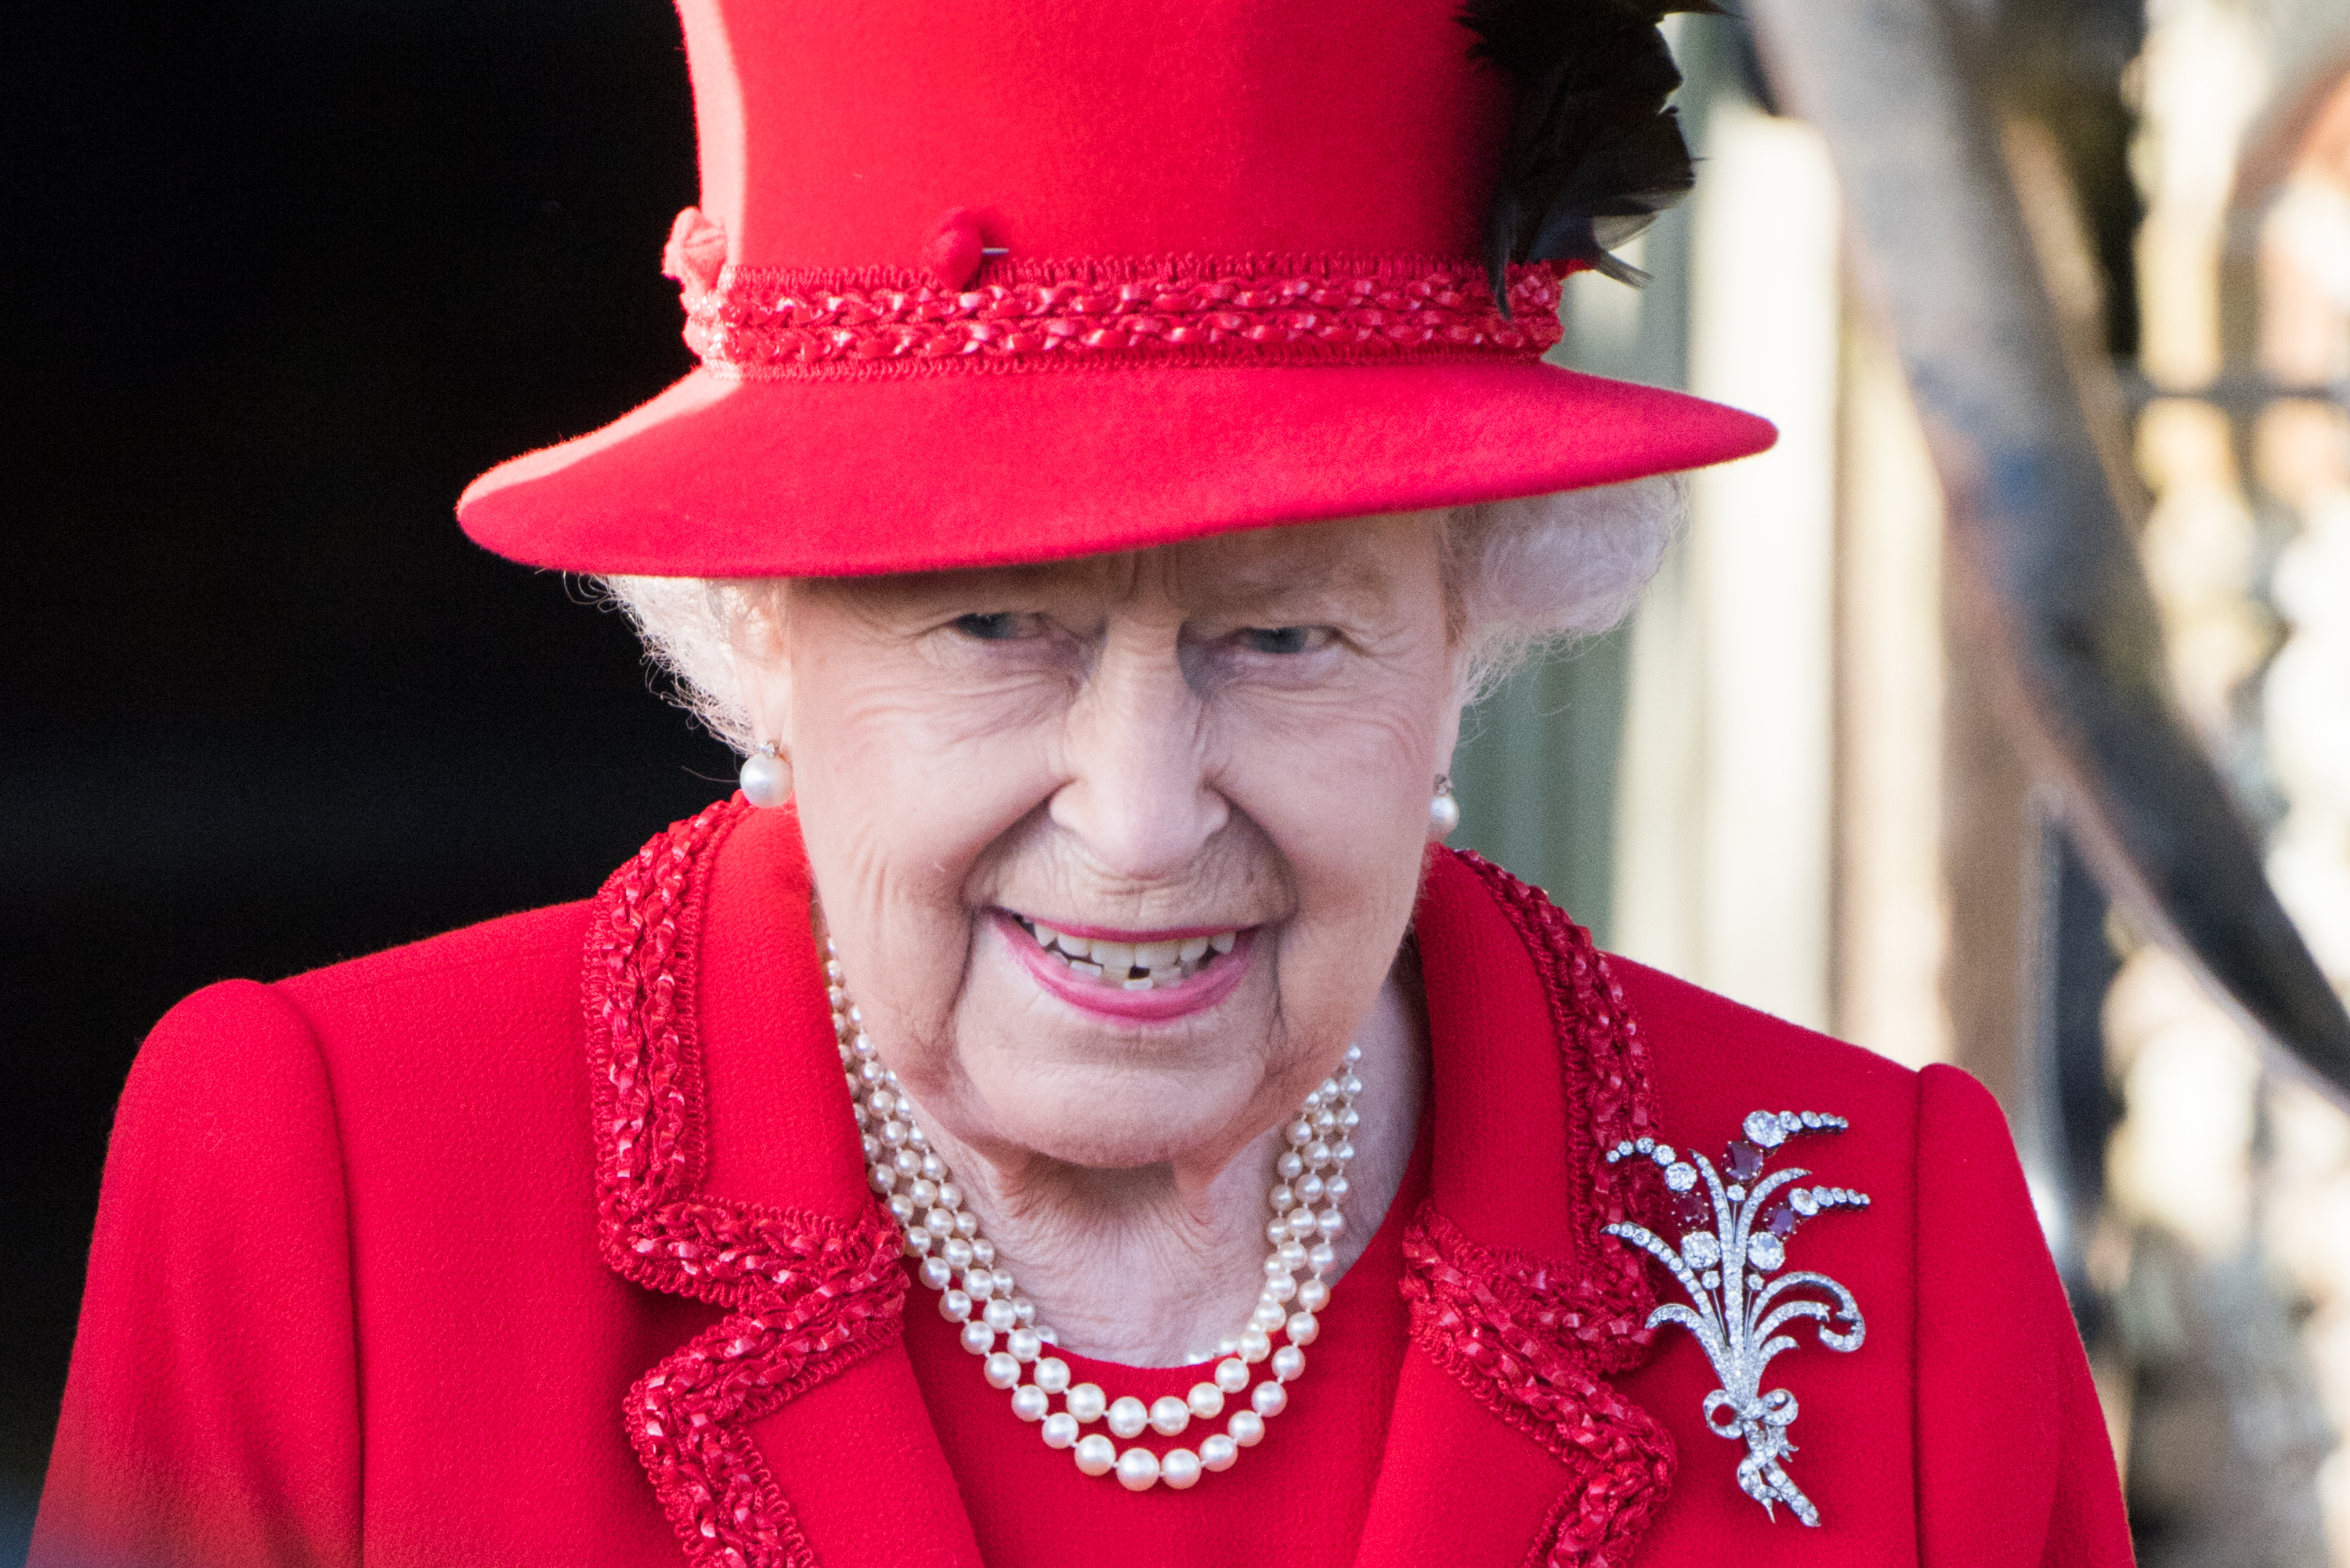 KING'S LYNN, ENGLAND - DECEMBER 25: Queen Elizabeth II attends the Christmas Day Church service at Church of St Mary Magdalene on the Sandringham estate on December 25, 2019 in King's Lynn, United Kingdom. (Photo by Pool/Samir Hussein/WireImage)